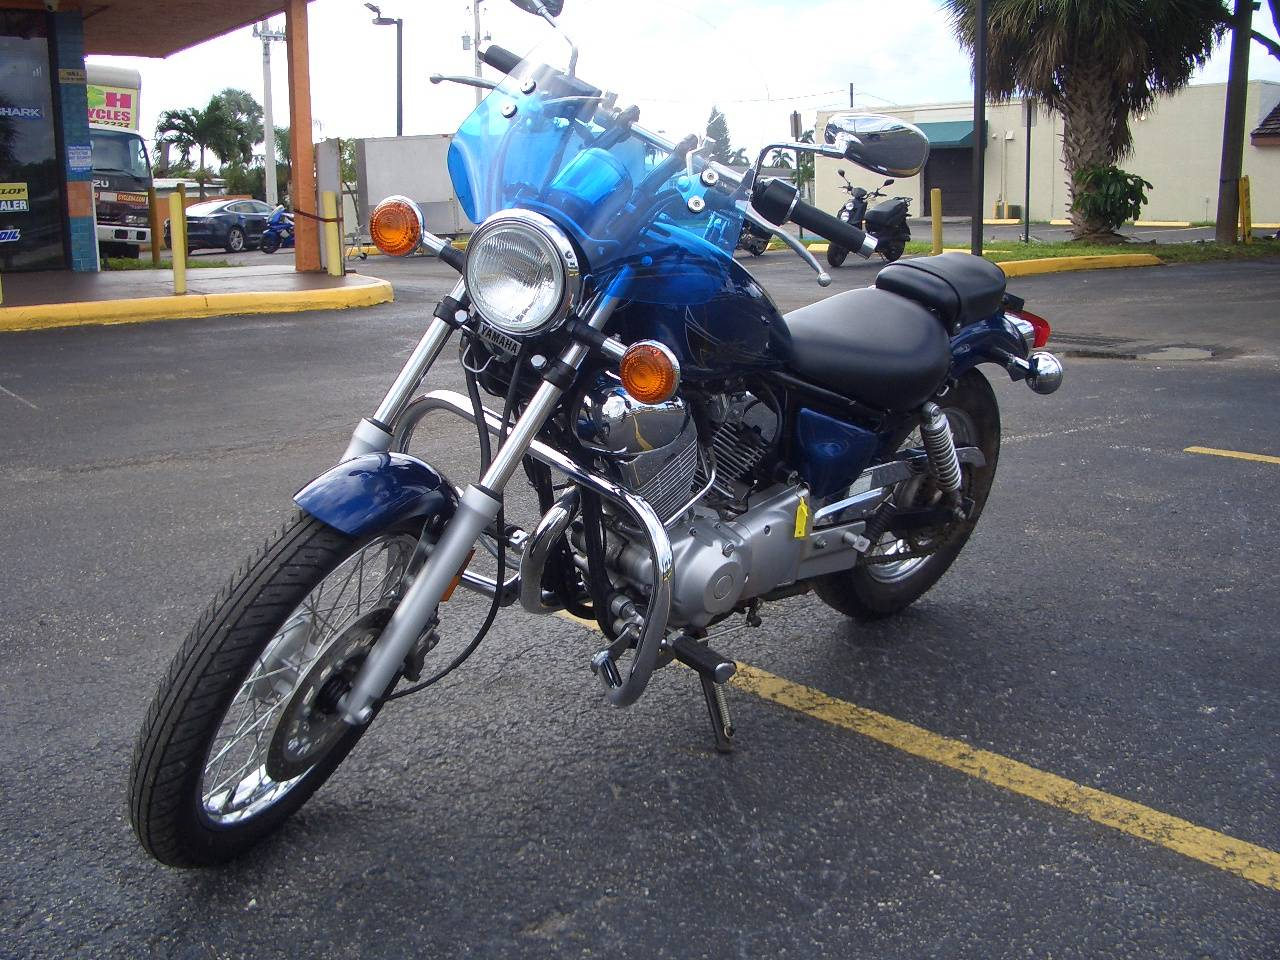 2013 Yamaha V Star 250 in Fort Lauderdale, Florida - Photo 2